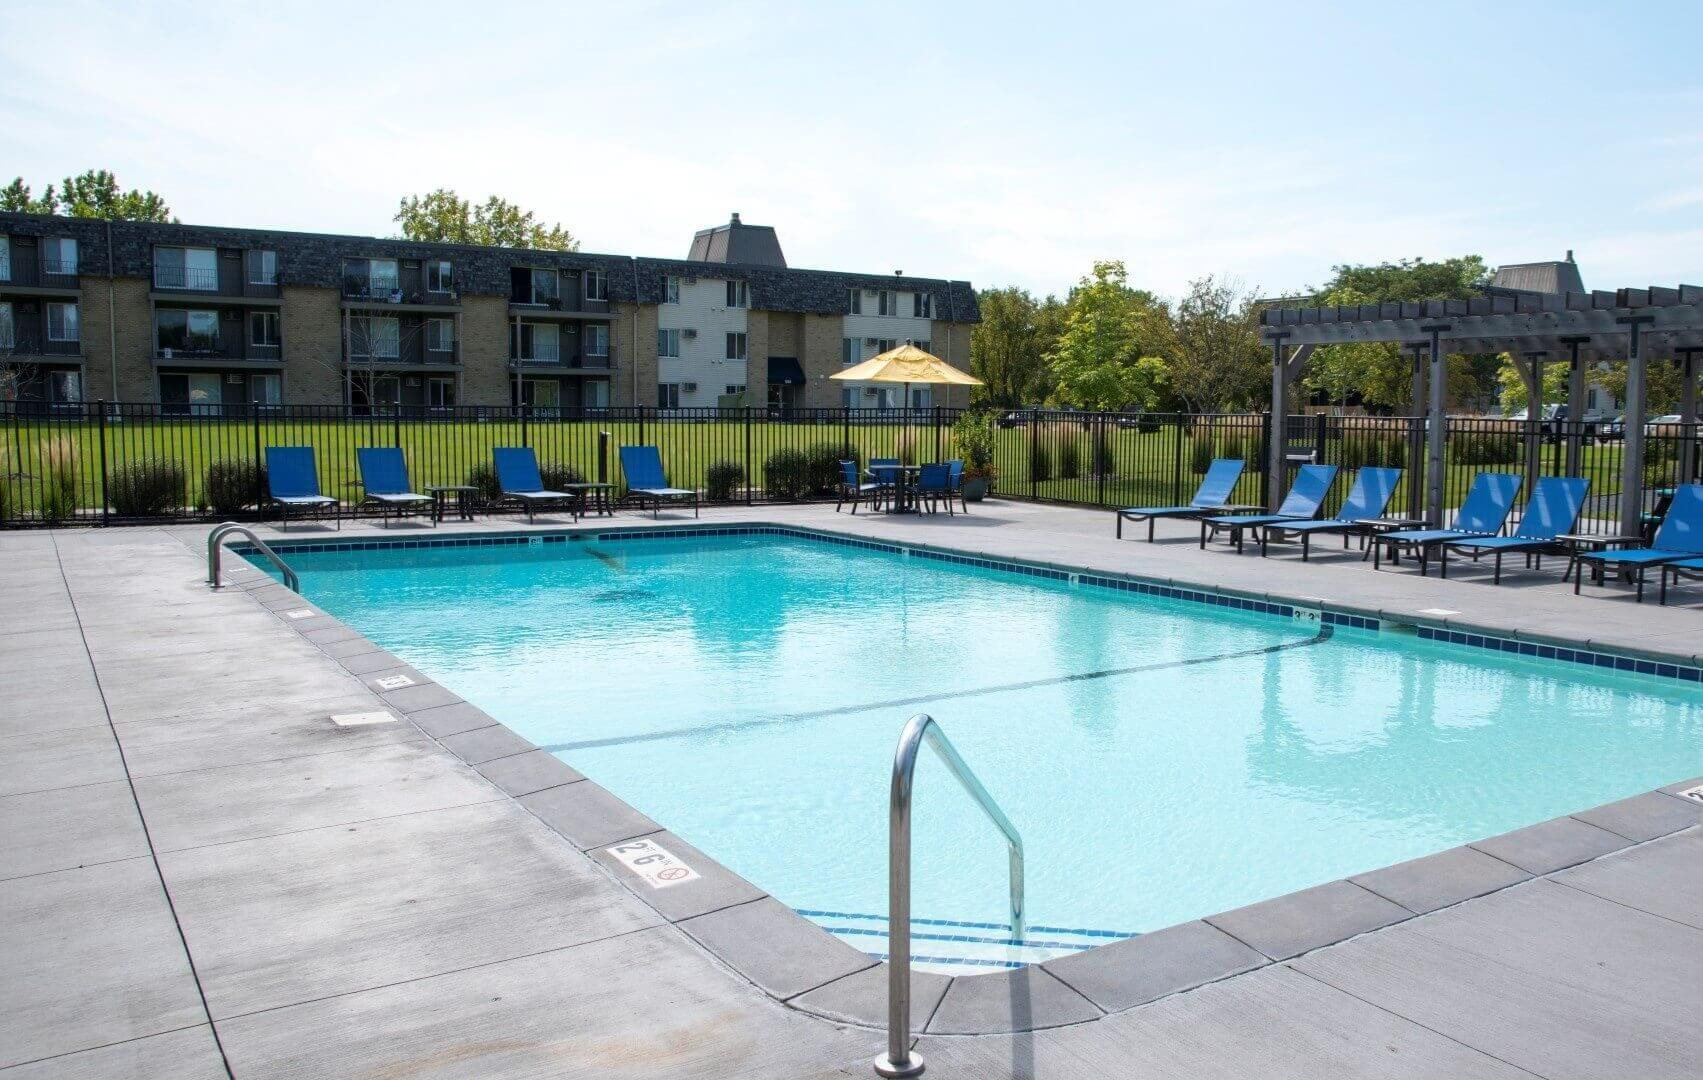 Pool at Shorview Grand apartments in Shoreview Minnesota